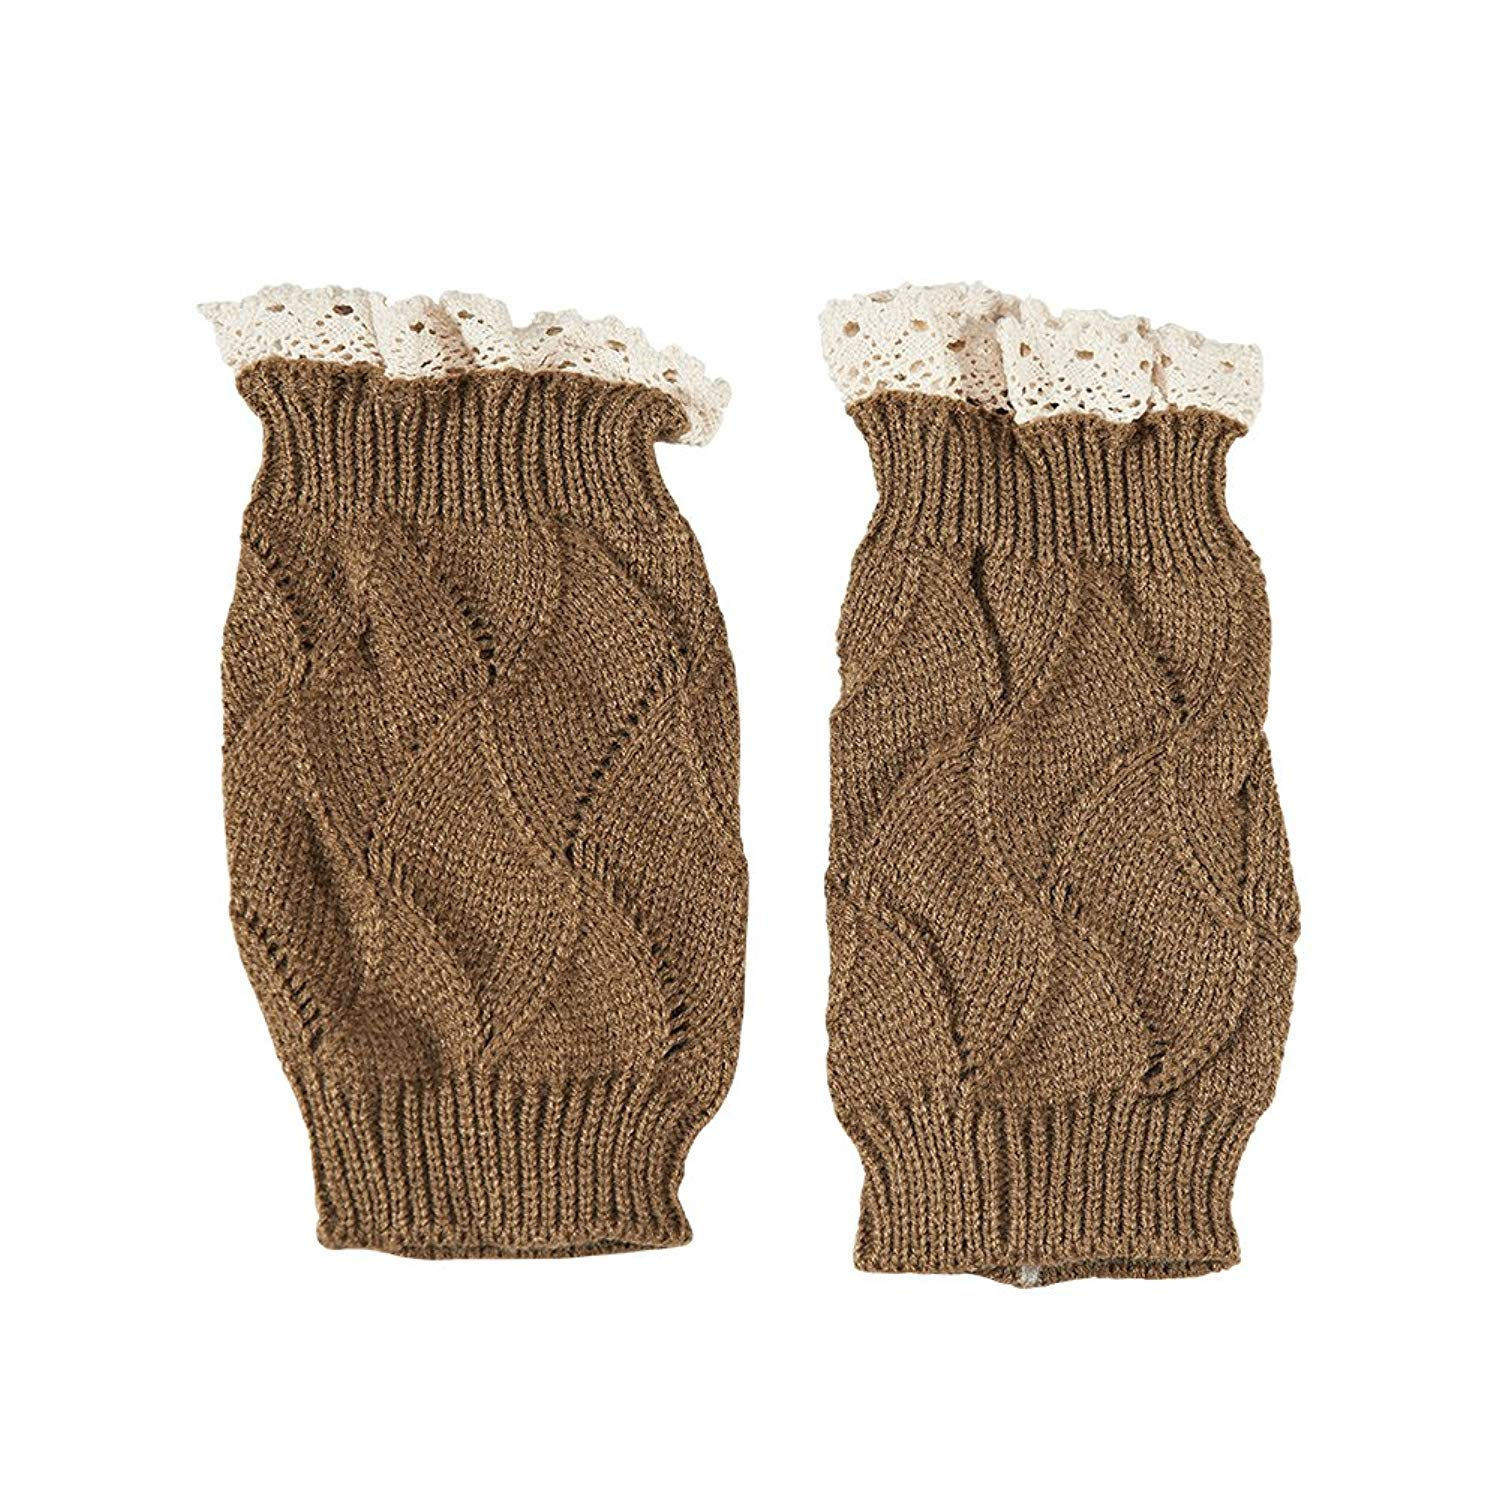 9e7048dc19 Get Quotations · Leg Warmer Cable Crochet Boot Cover Women s Cuffs Lace  Knitted Boot Sock Cuffs